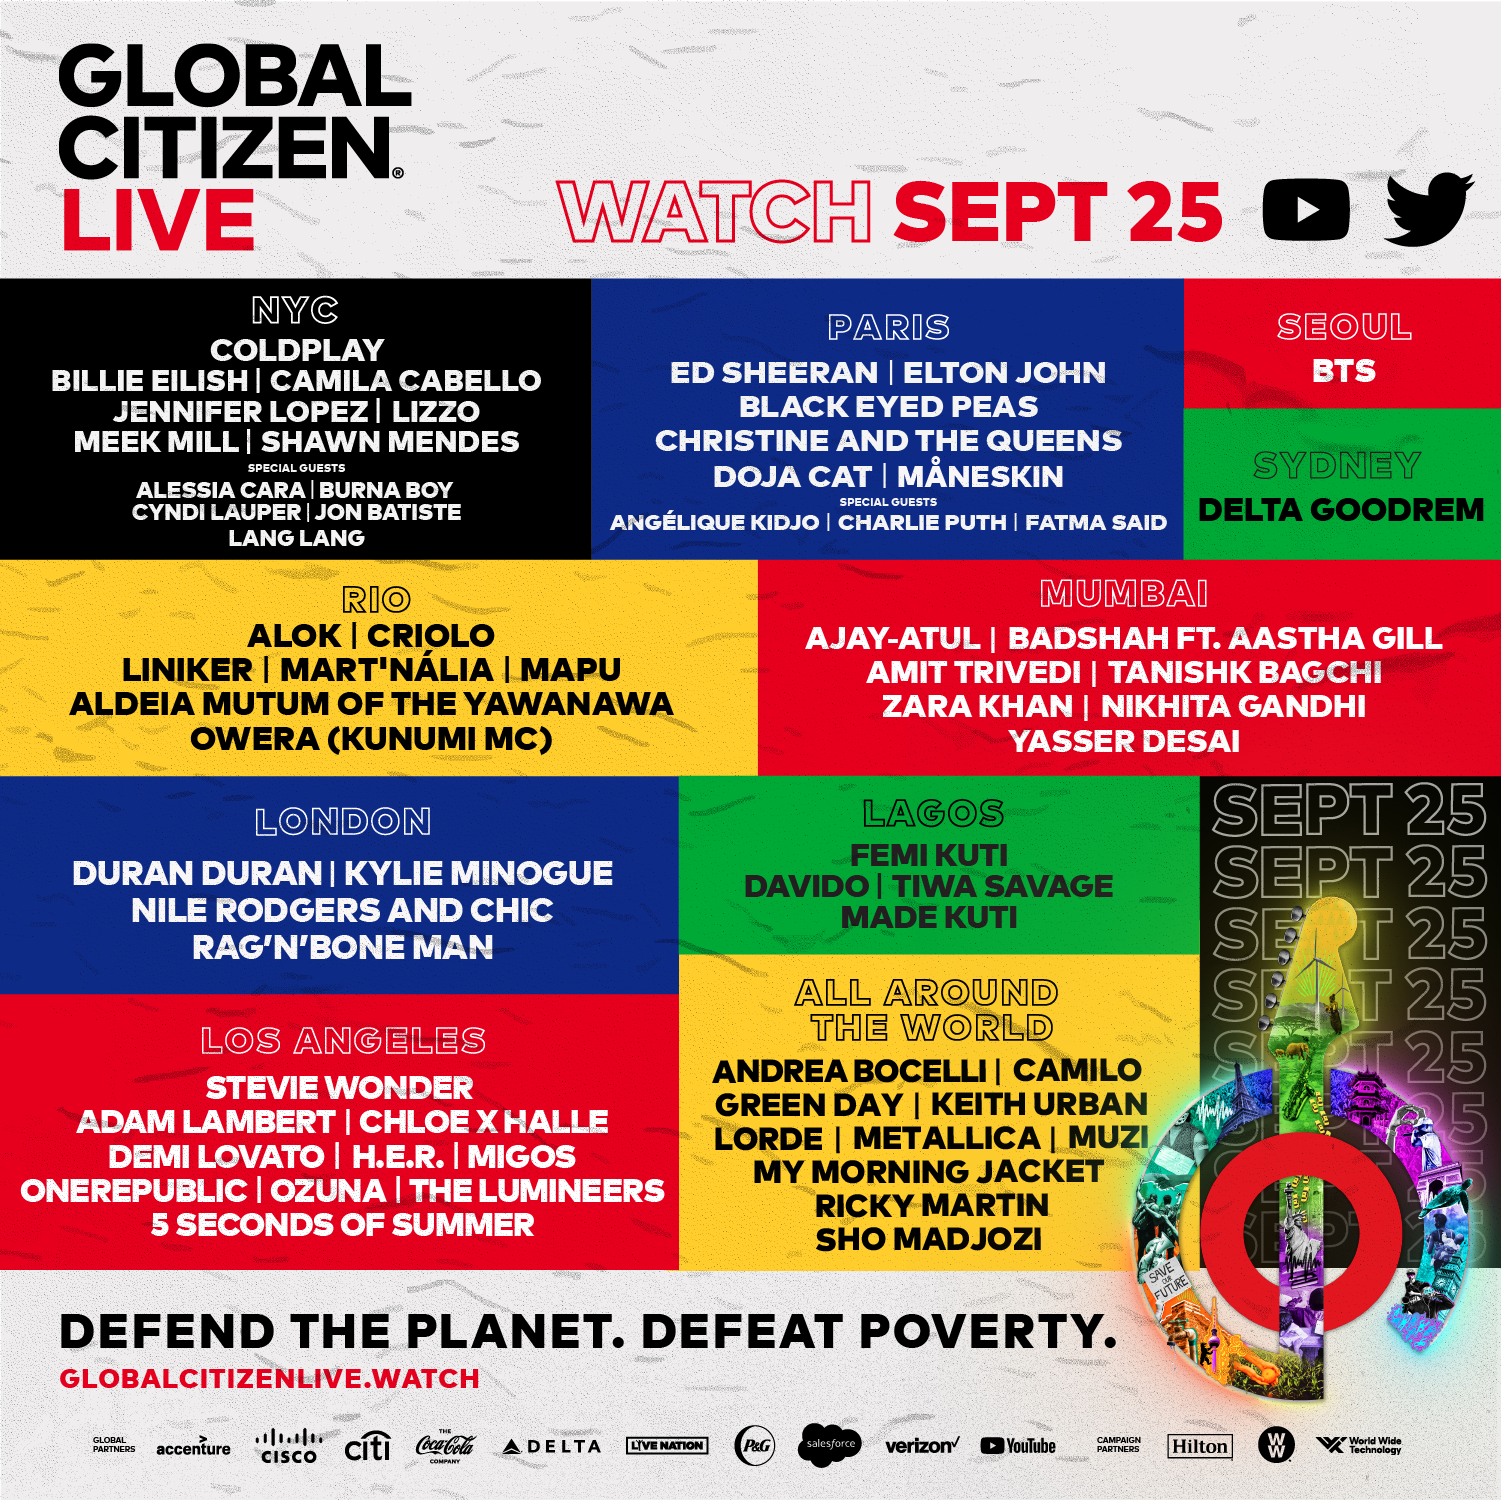 GCL_2021_GLOBAL_ADMAT_BY_CITIES_SEP_21_USE_THIS_ONE.png